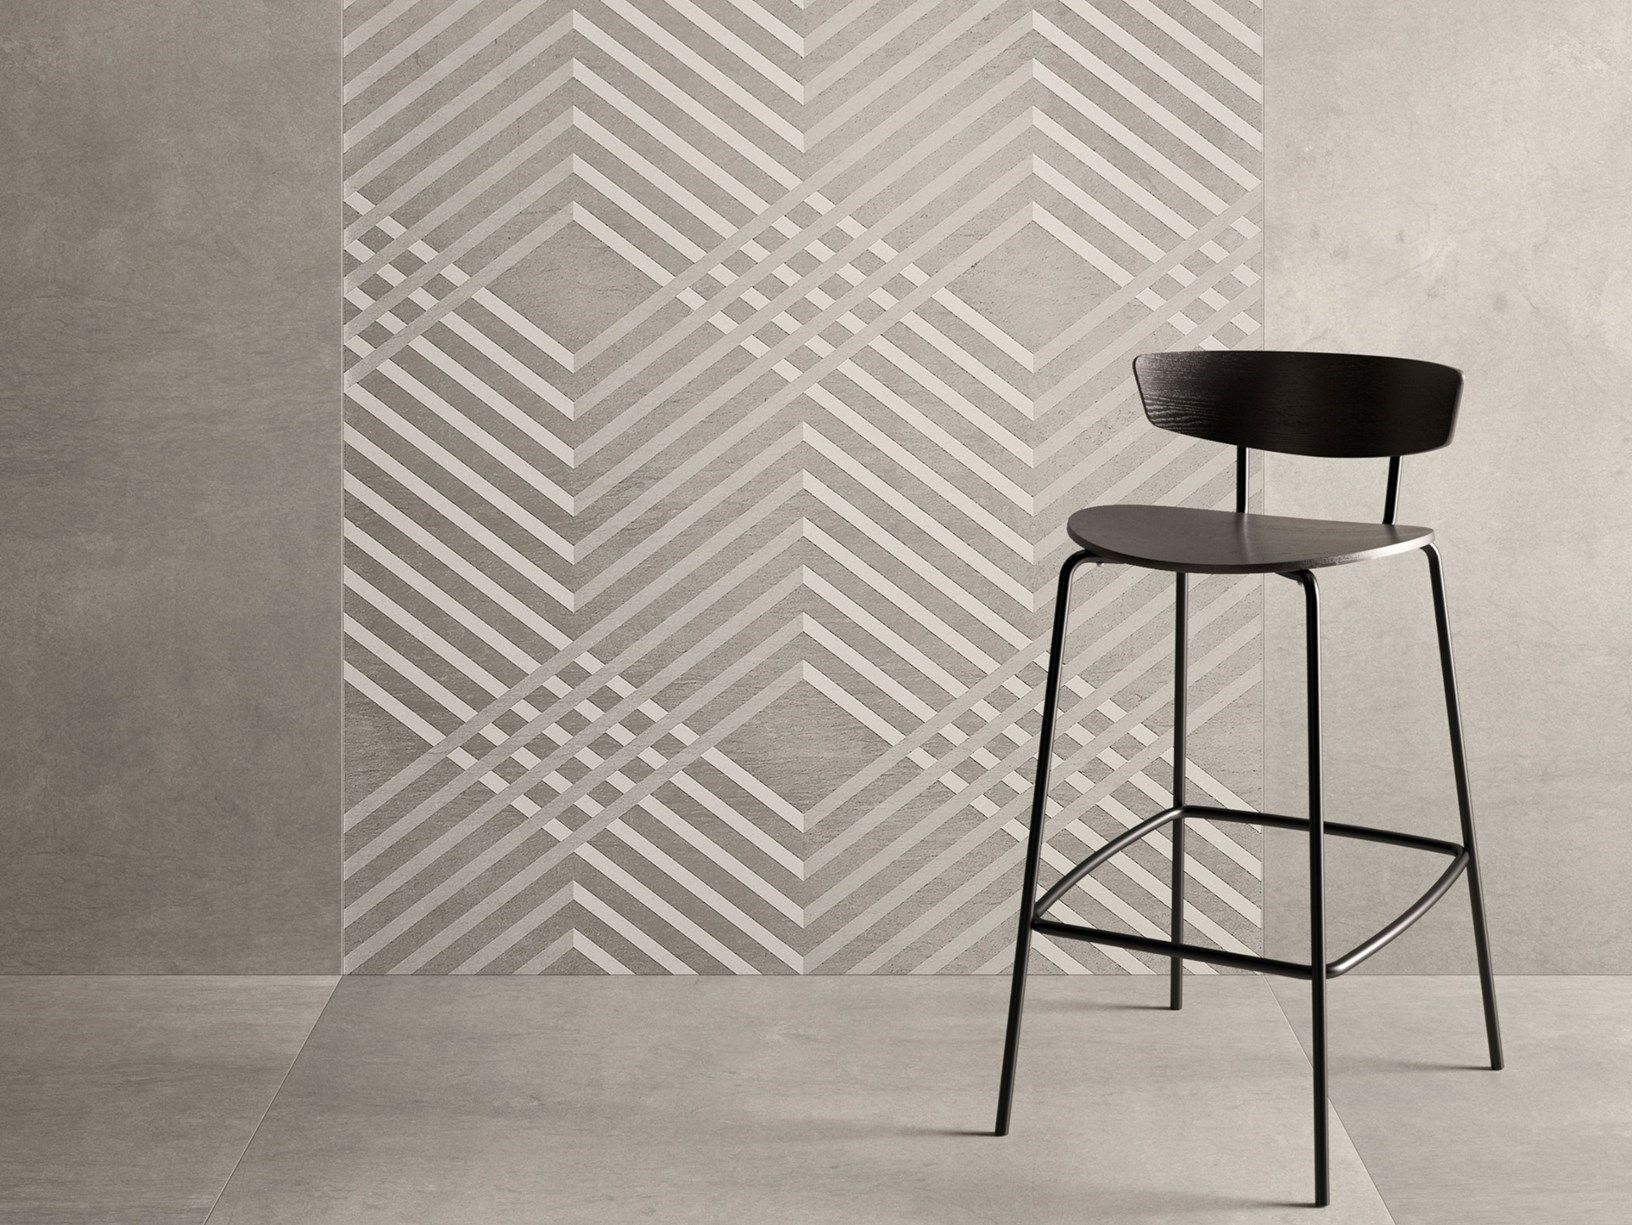 Prix Cheminee Exterieur Feu Chic Design optical illusions, geometric textures and multicolored patterns